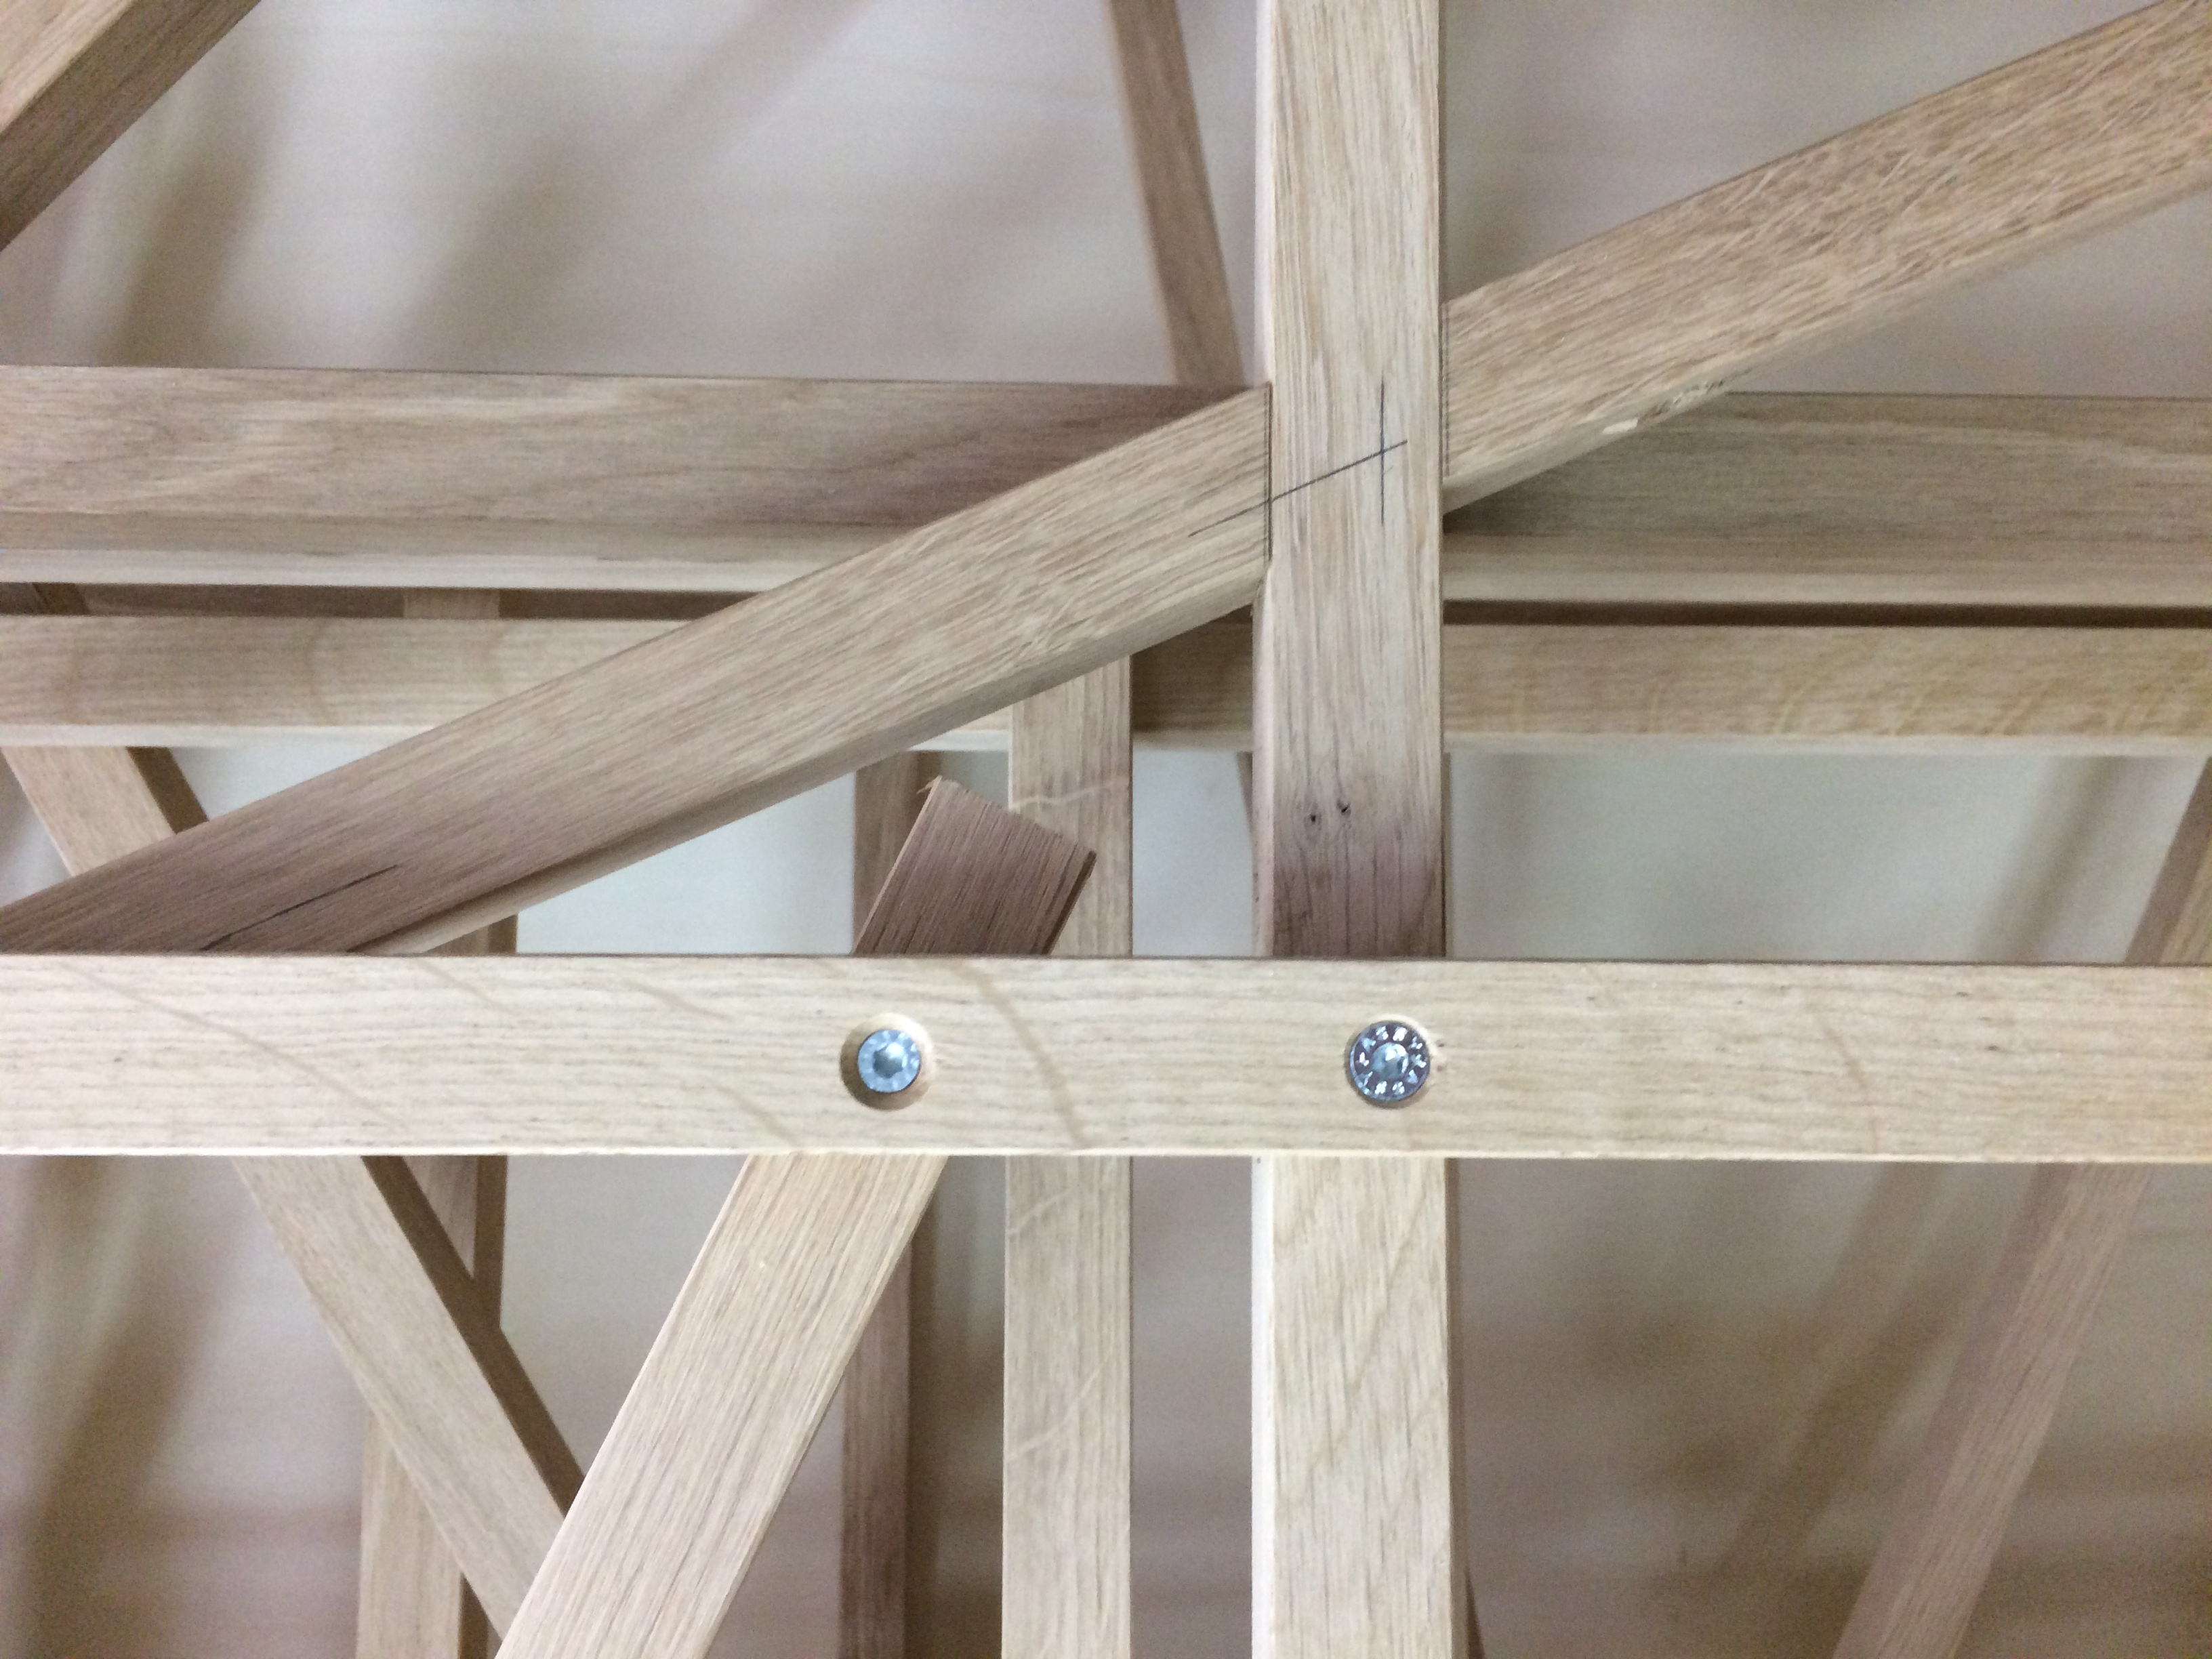 "<span class=""deutsch"">Knotenpunkte Holzverbindung Raumgestell</span><span class=""englisch"">wood joints of the construction frame</span>"